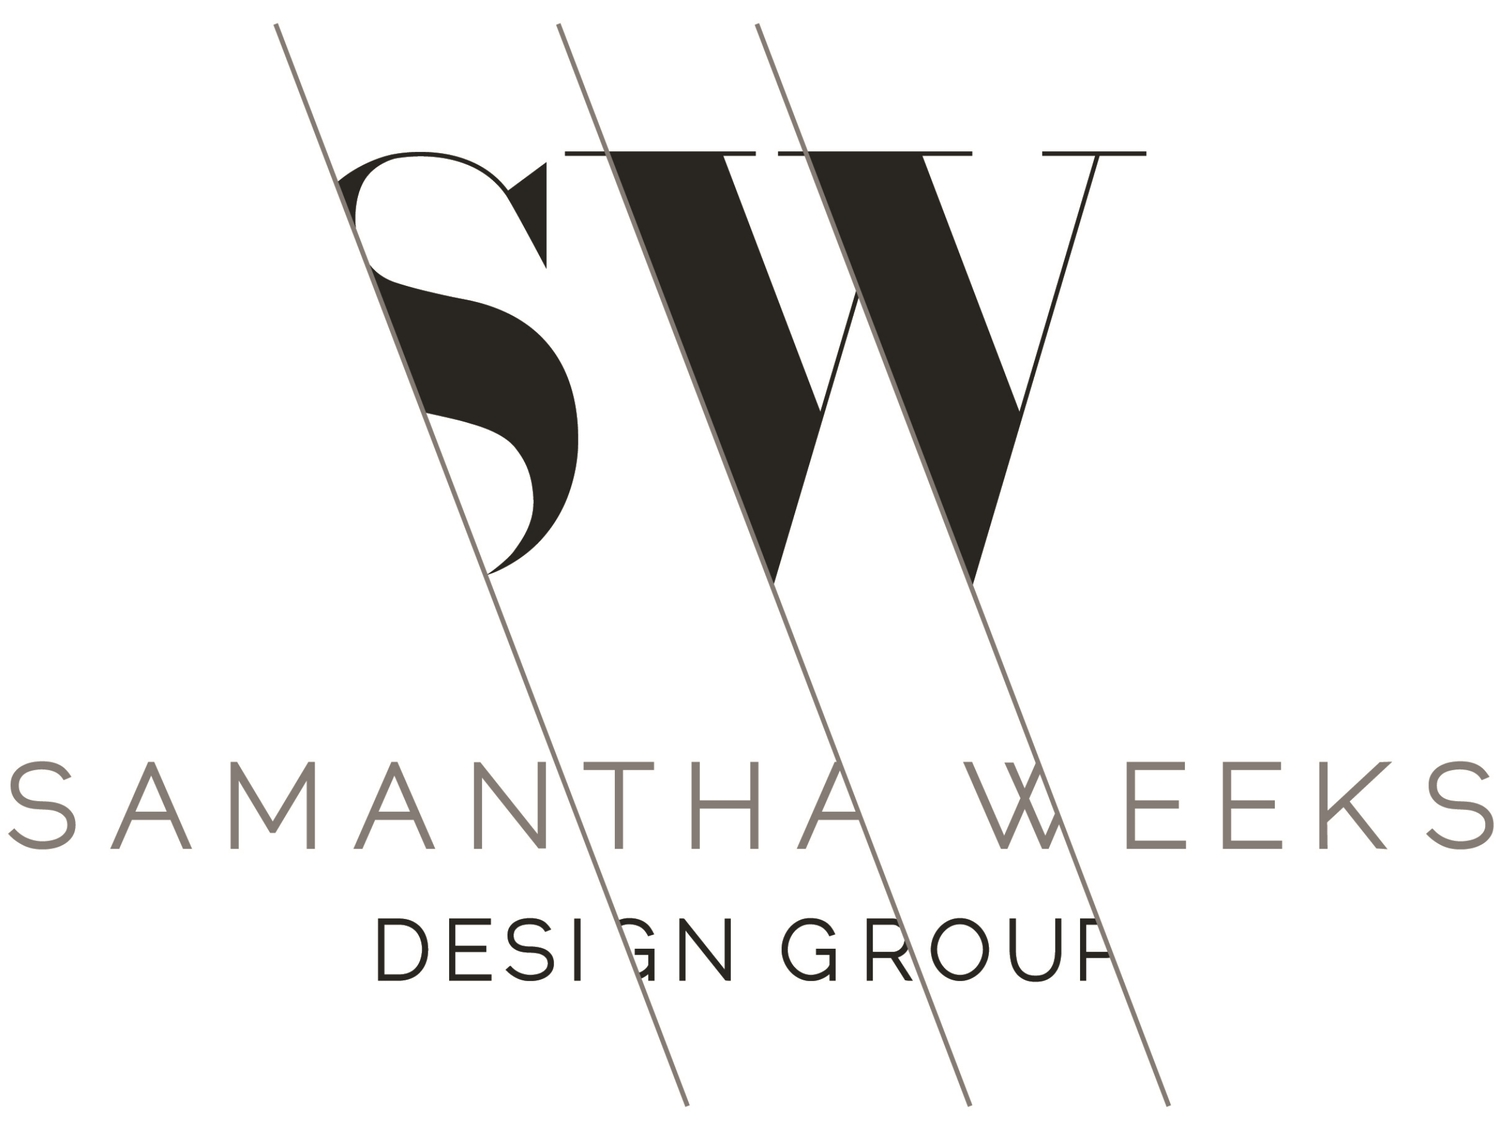 SAMANTHA WEEKS DESIGN GROUP